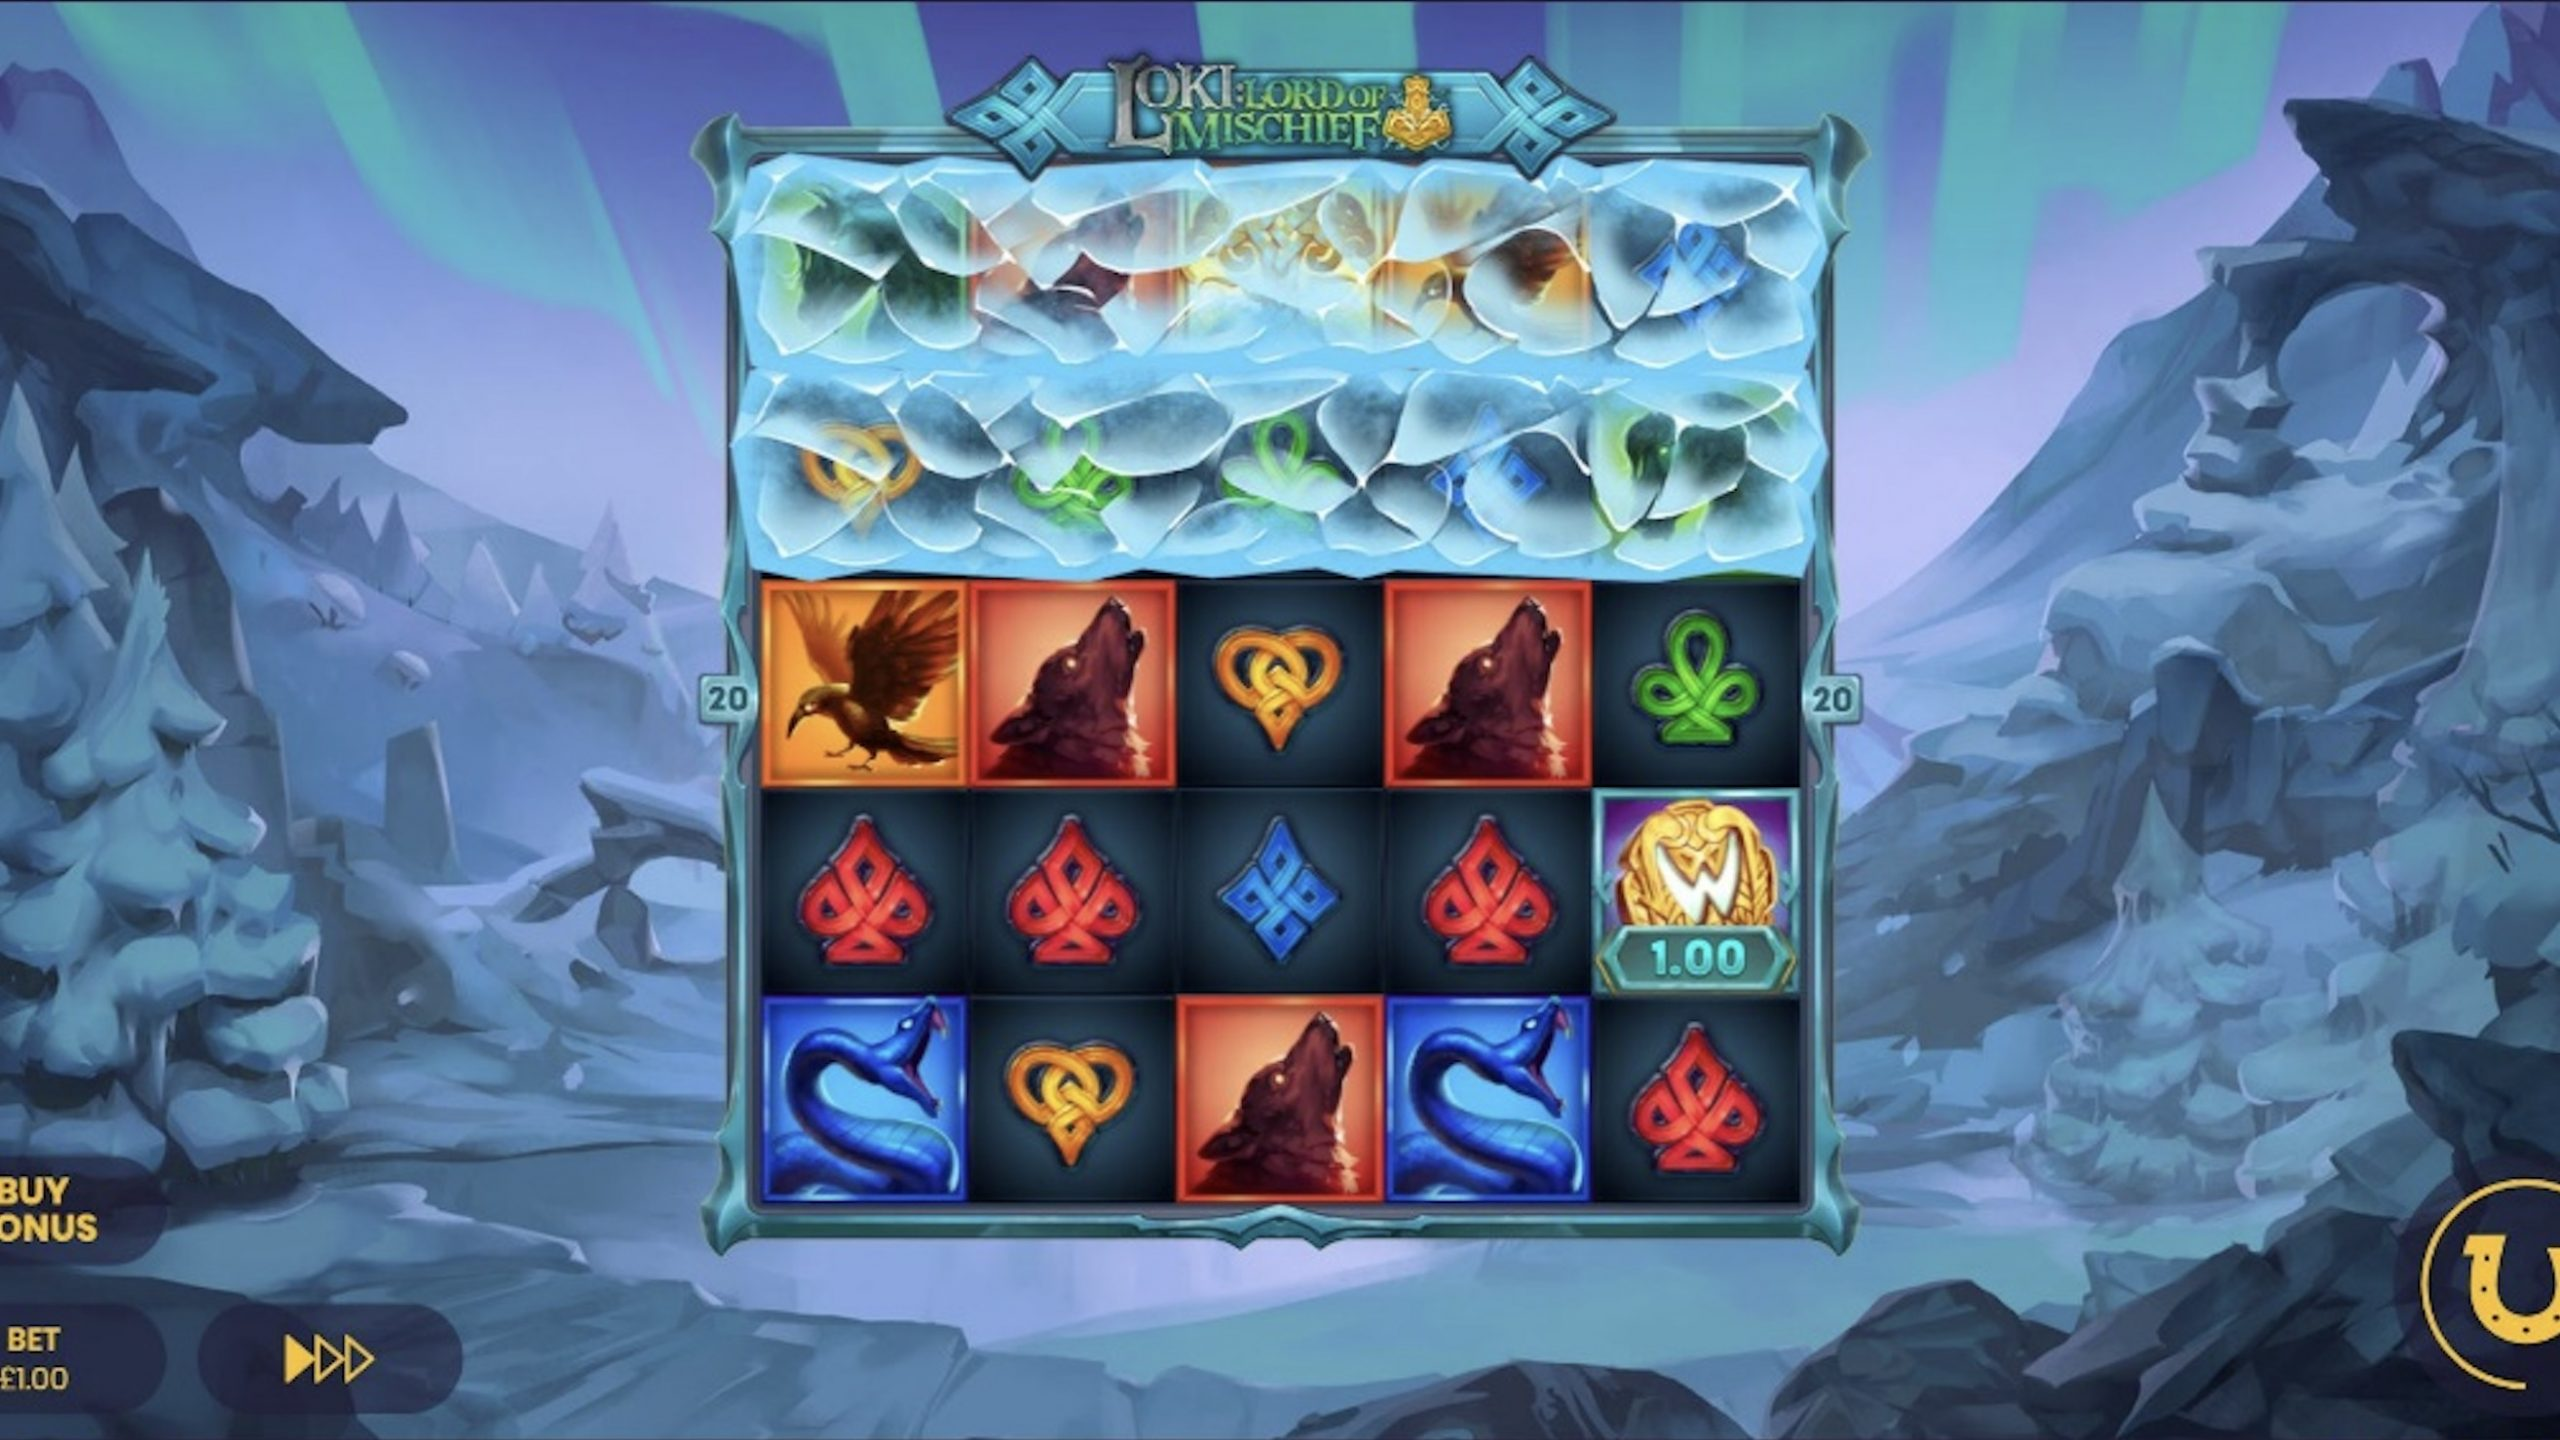 Lucksome has turned to the god of tricks in its most recent slot title Loki: Lord of Mischief, which features the Super Lux Reels mechanic.